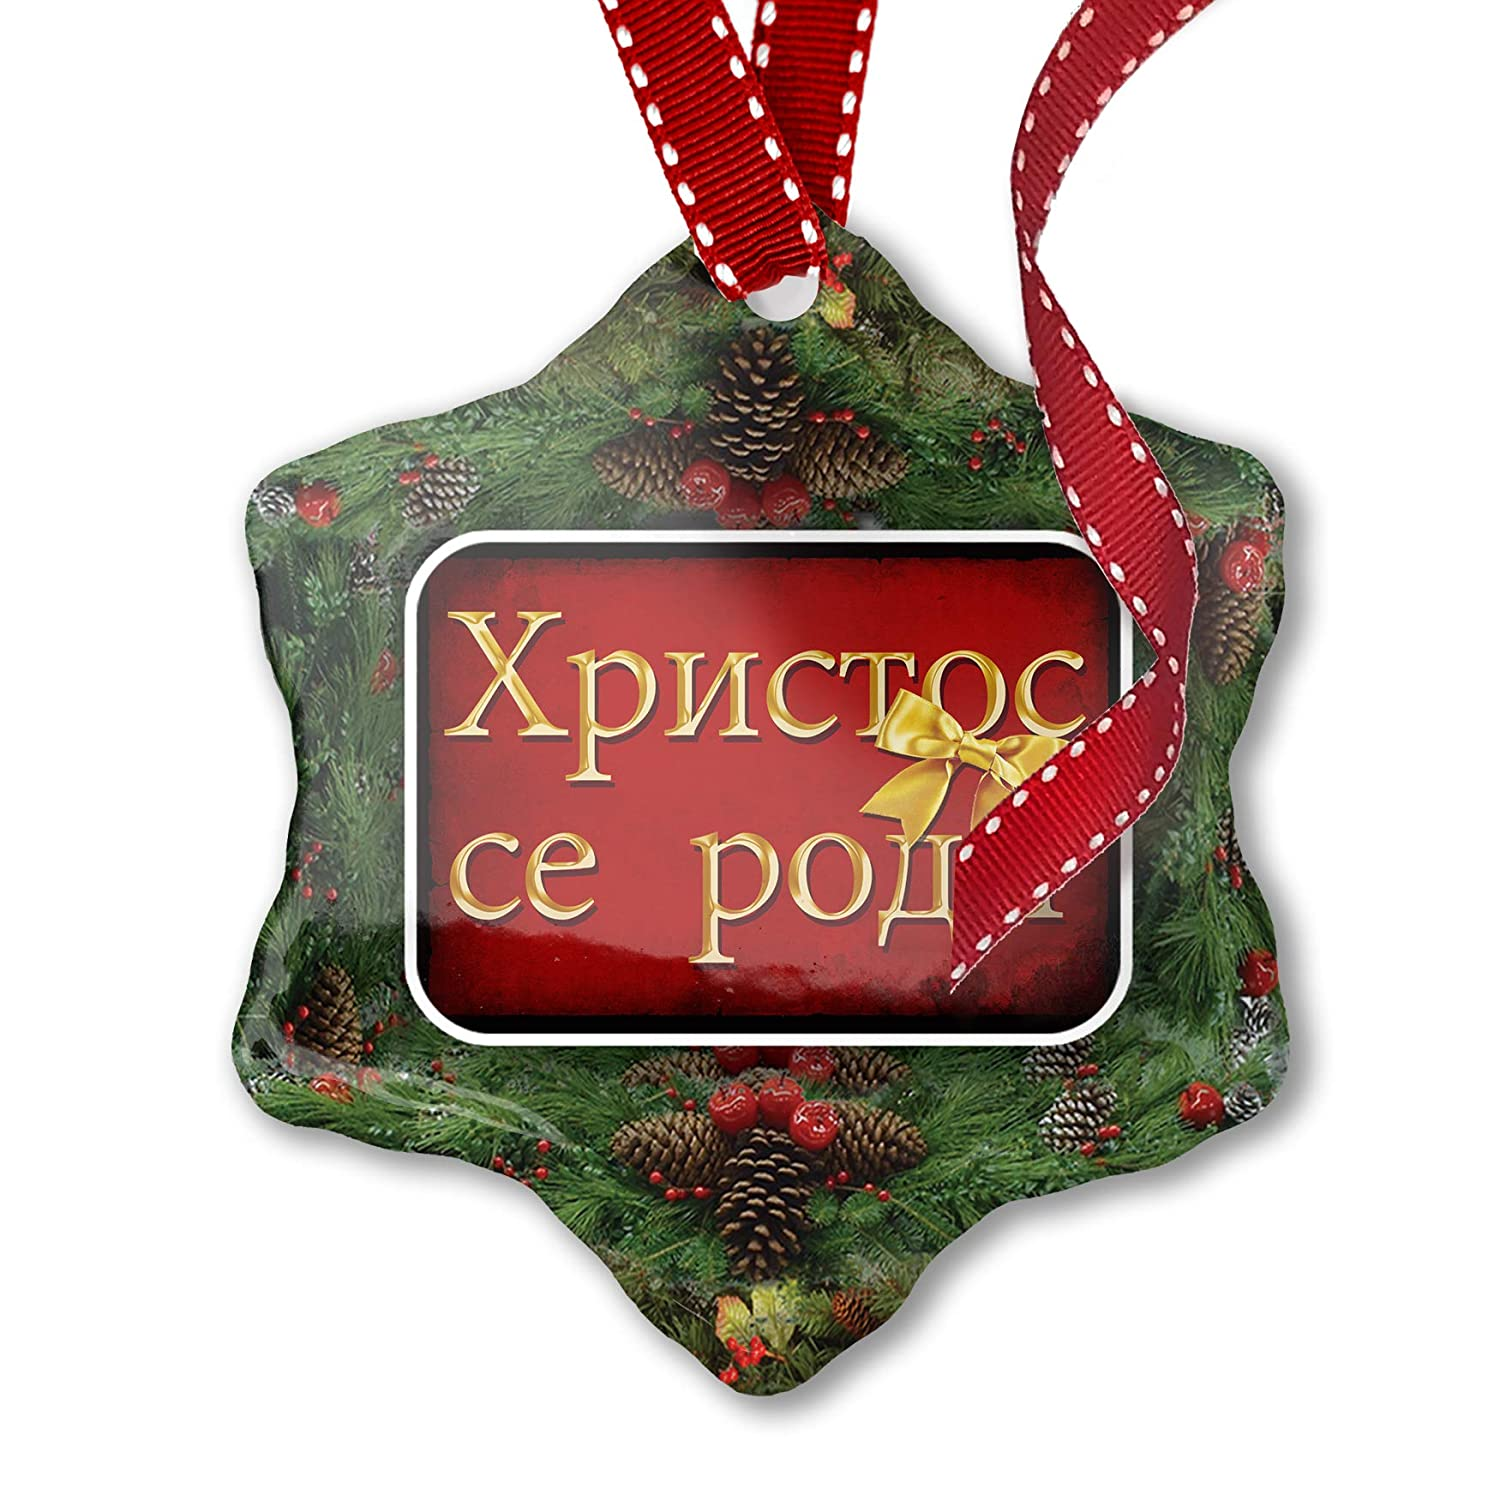 NEONBLOND Christmas Ornament Merry Christmas in Serbian from Serbia, Kosovo, Bosnia and Herzegovina